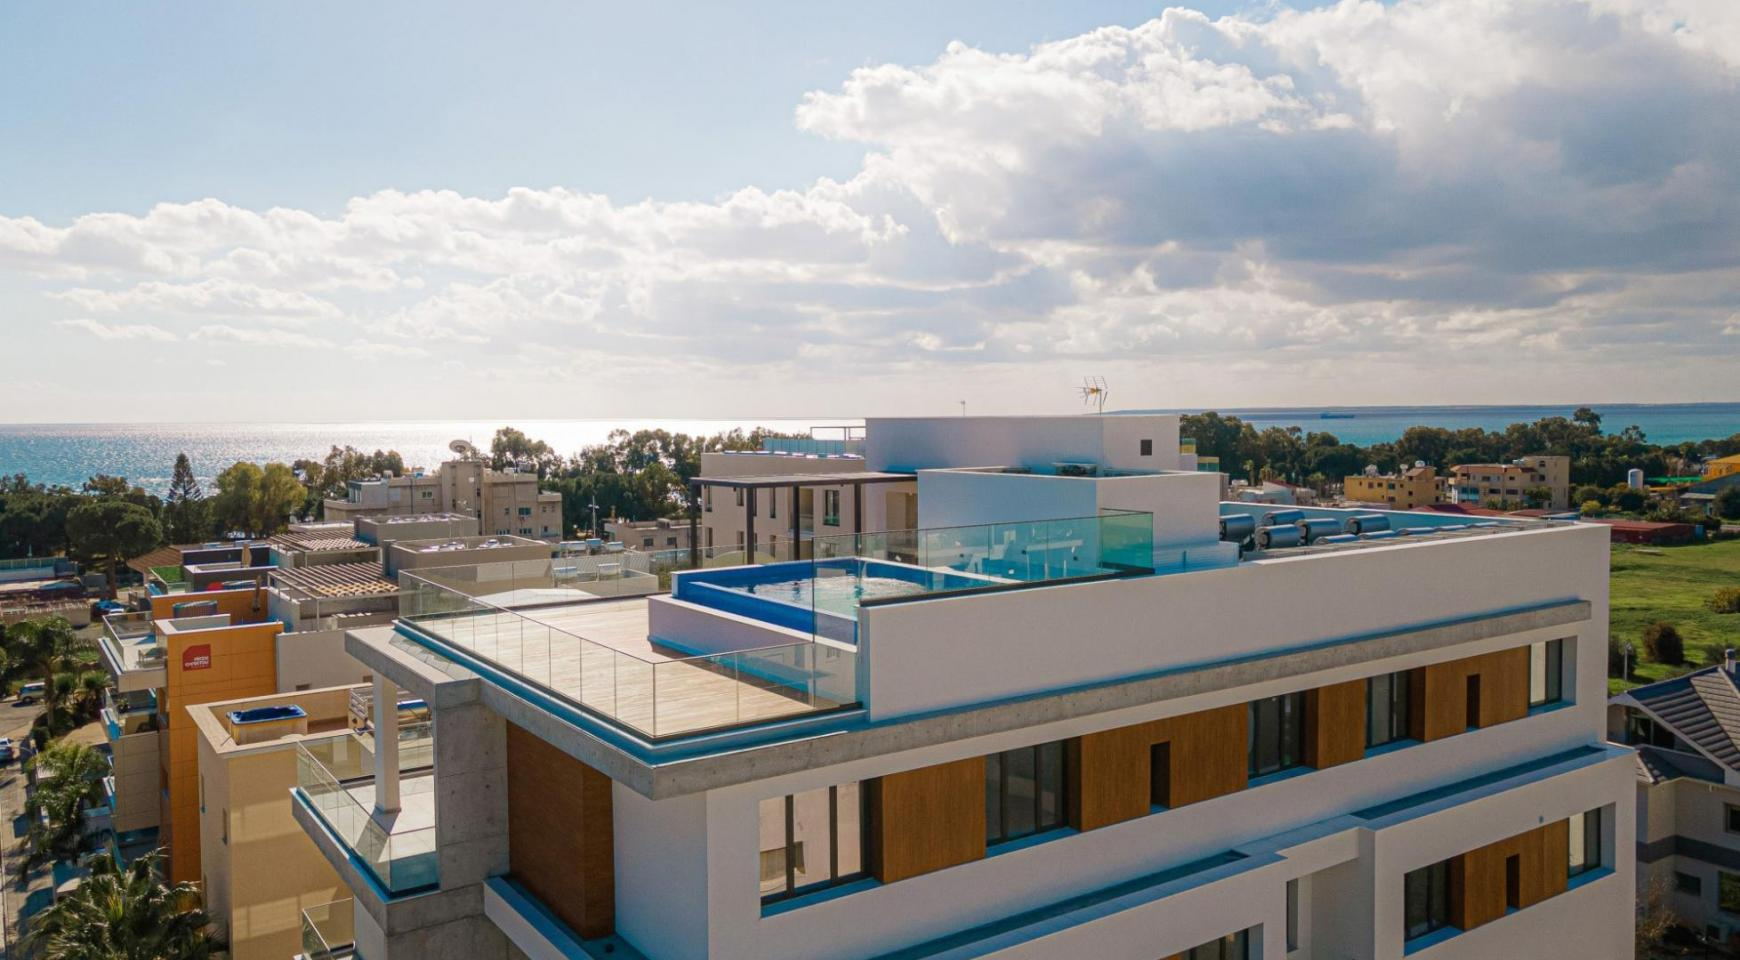 HORTENSIA RESIDENCE, Apt. 101. 2 Bedroom Apartment  in a New Complex near the Sea - 3